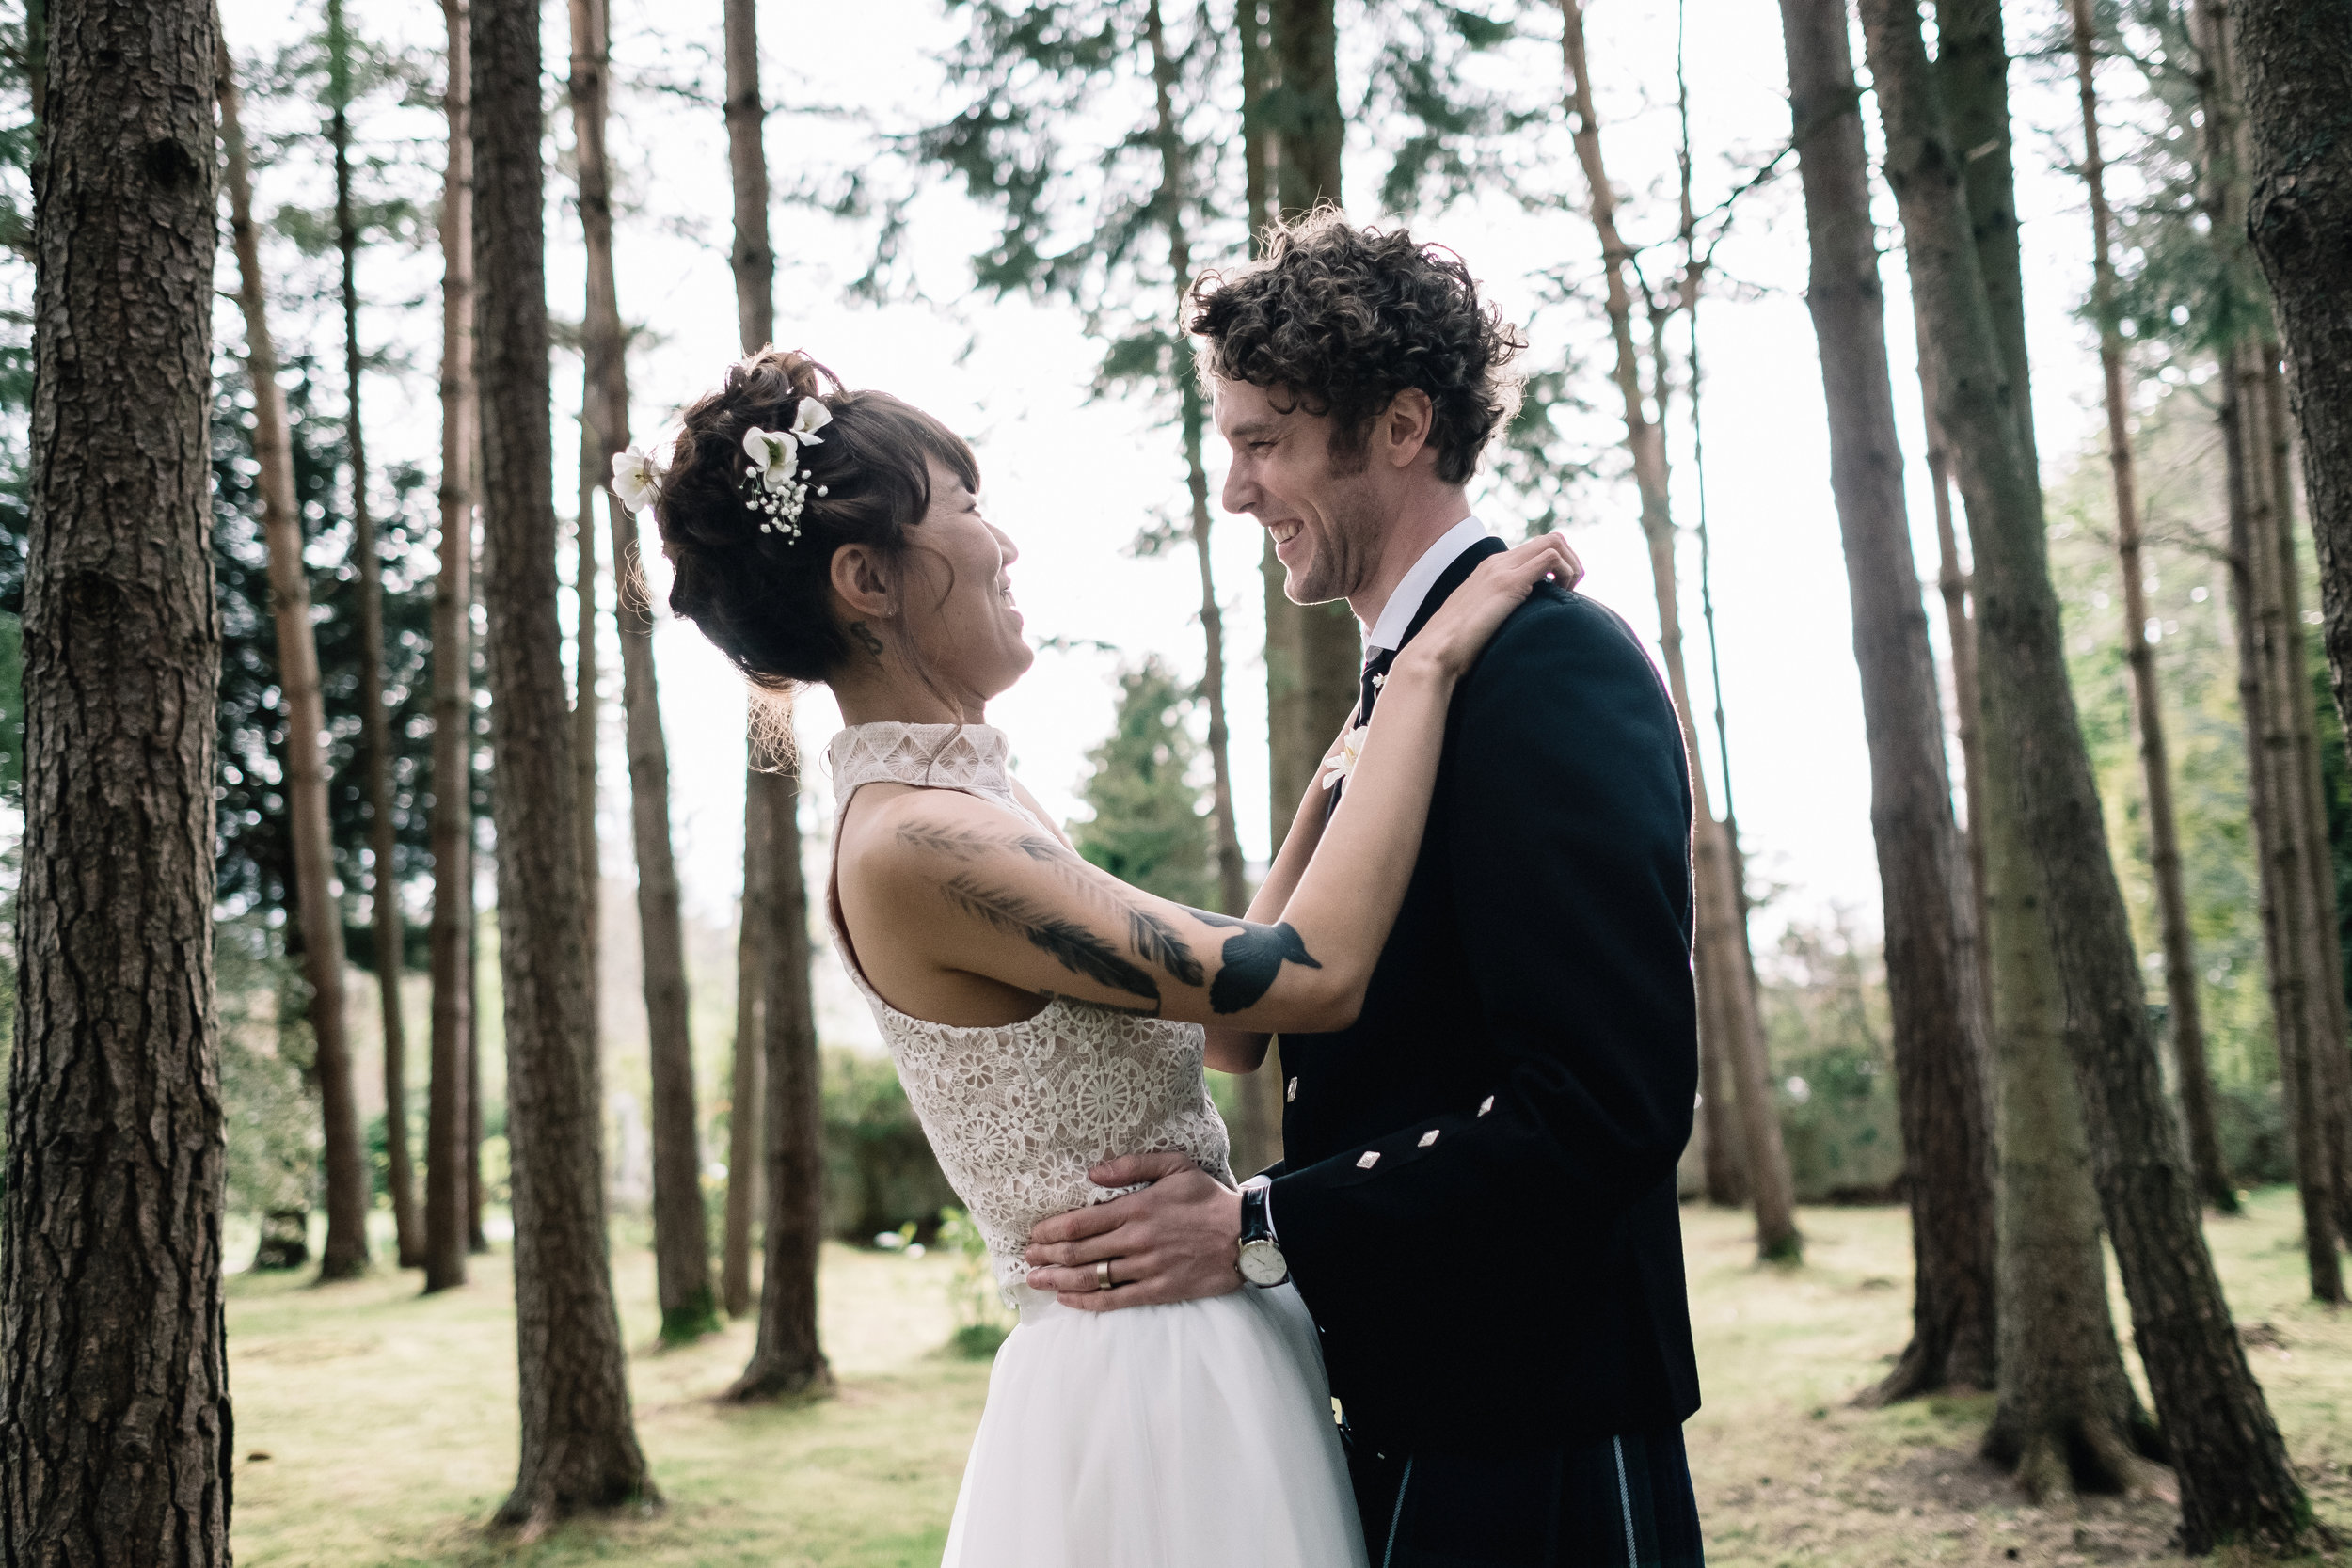 Bride and groom embrace in forrest